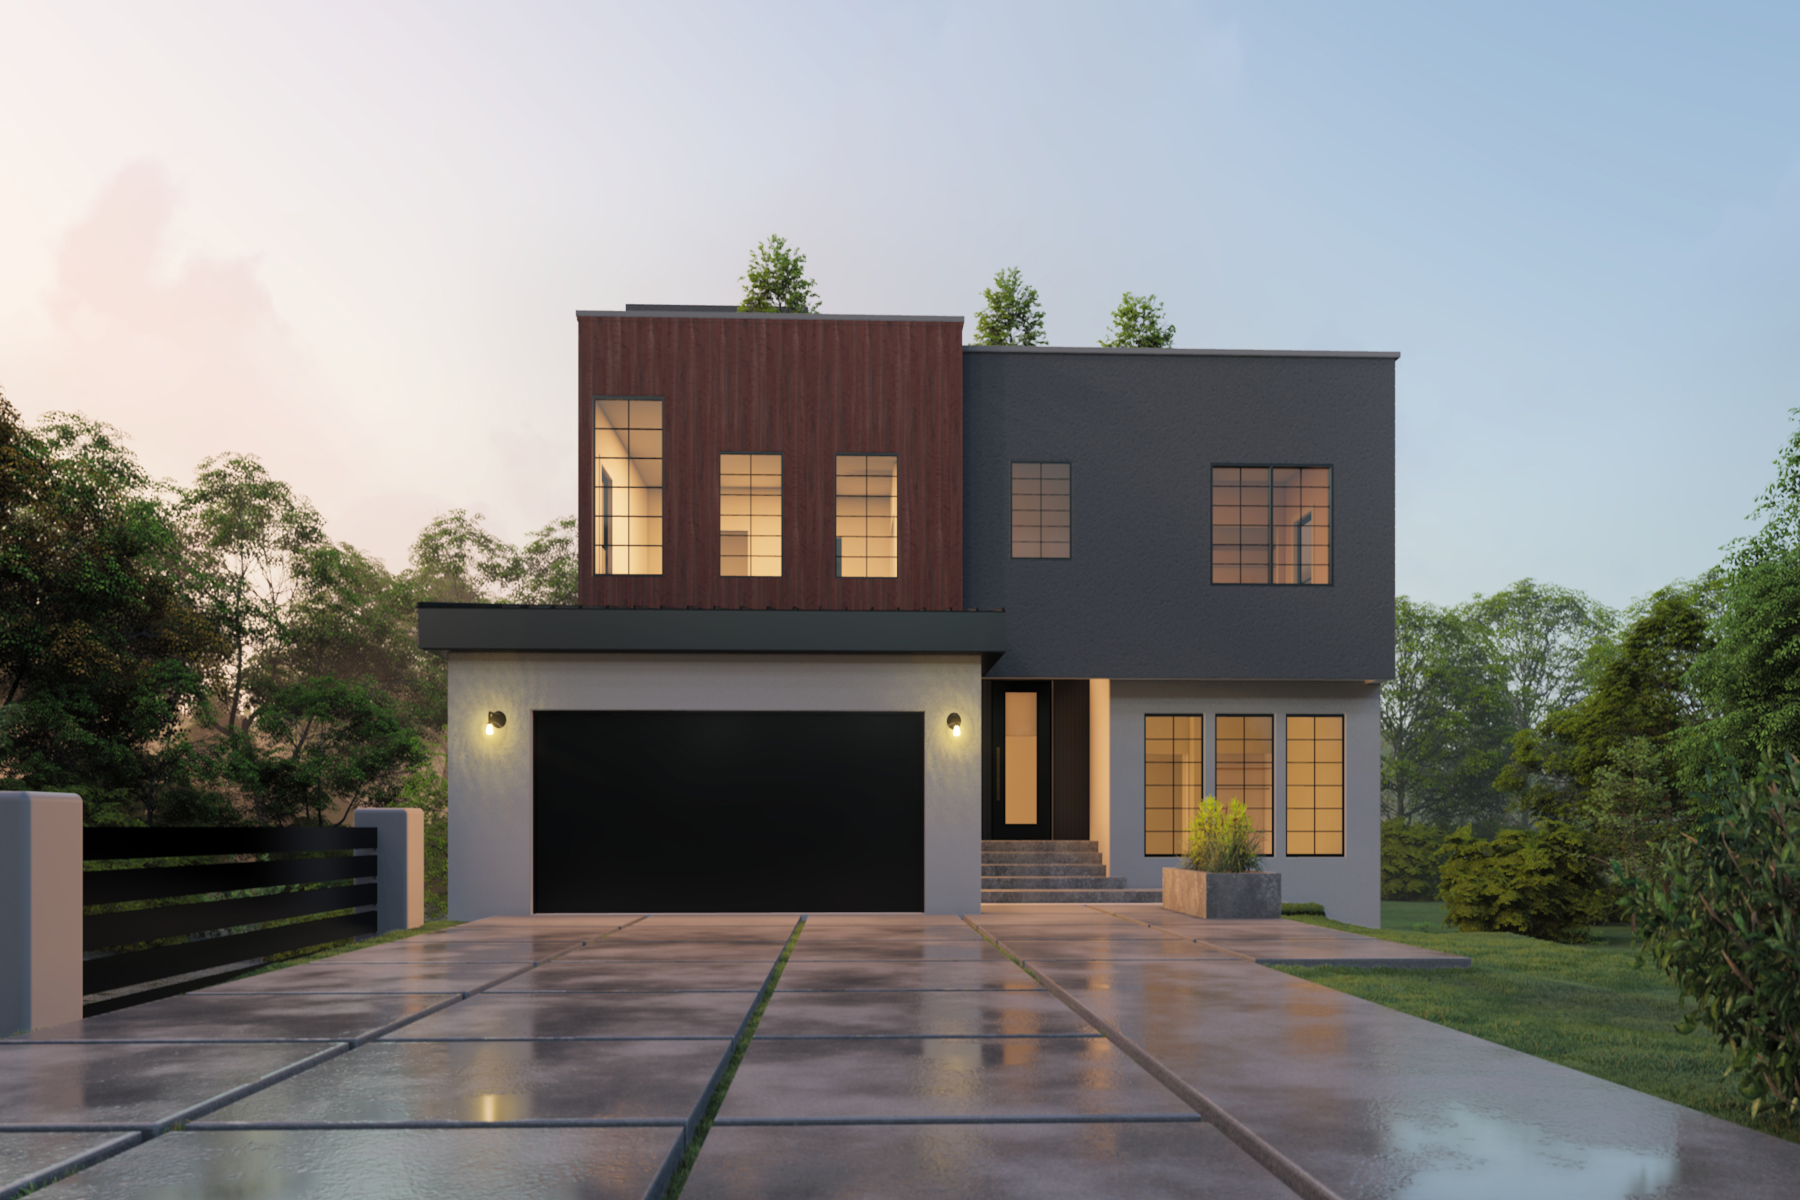 Property for Sale at Buckhead Forest Contemporary New Construction in Sarah Smith School District 190 Alberta Drive Atlanta, Georgia 30305 United States